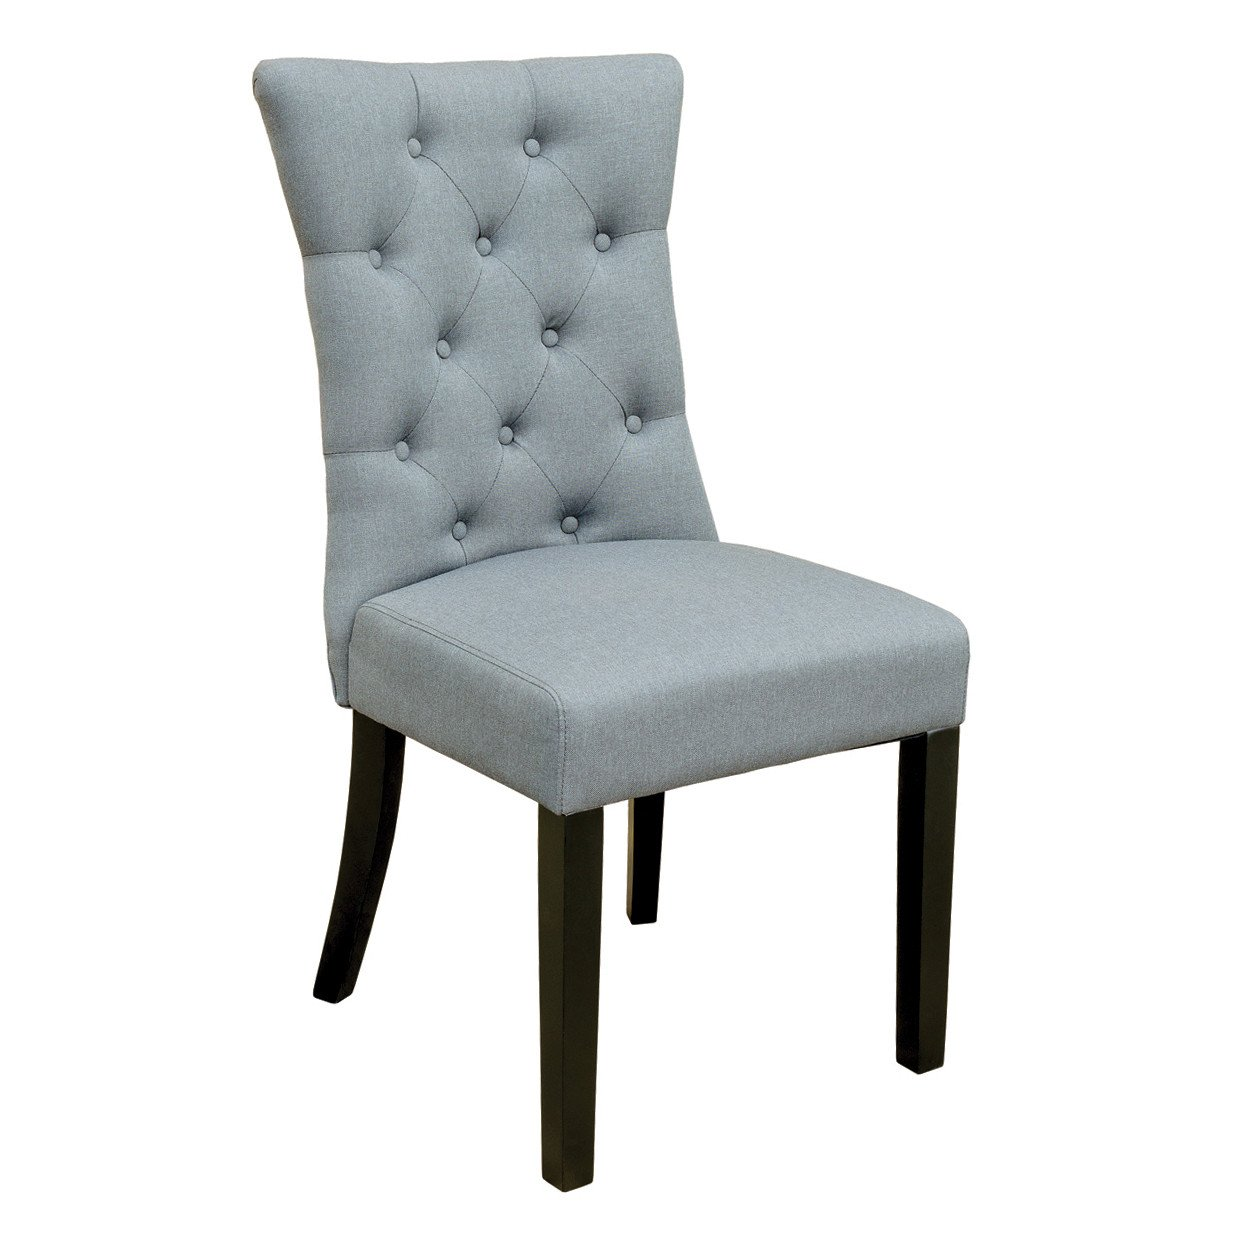 roma grey buttoned dining chair – glam home store - roma grey buttoned dining chair